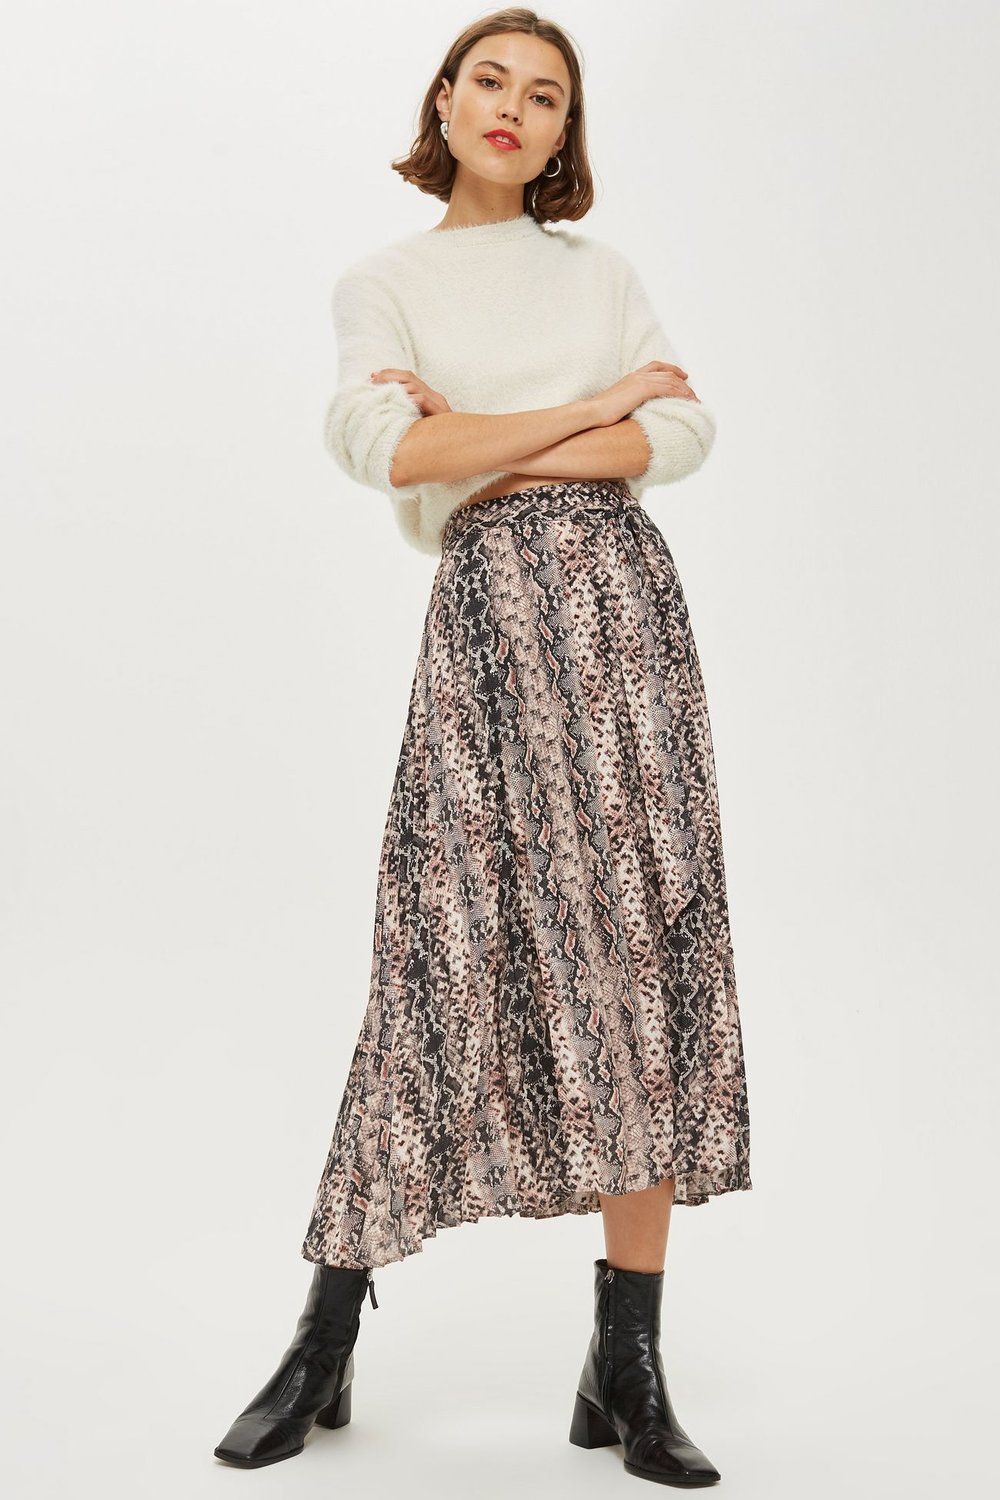 This cute Topshop skirt can be bought    here.